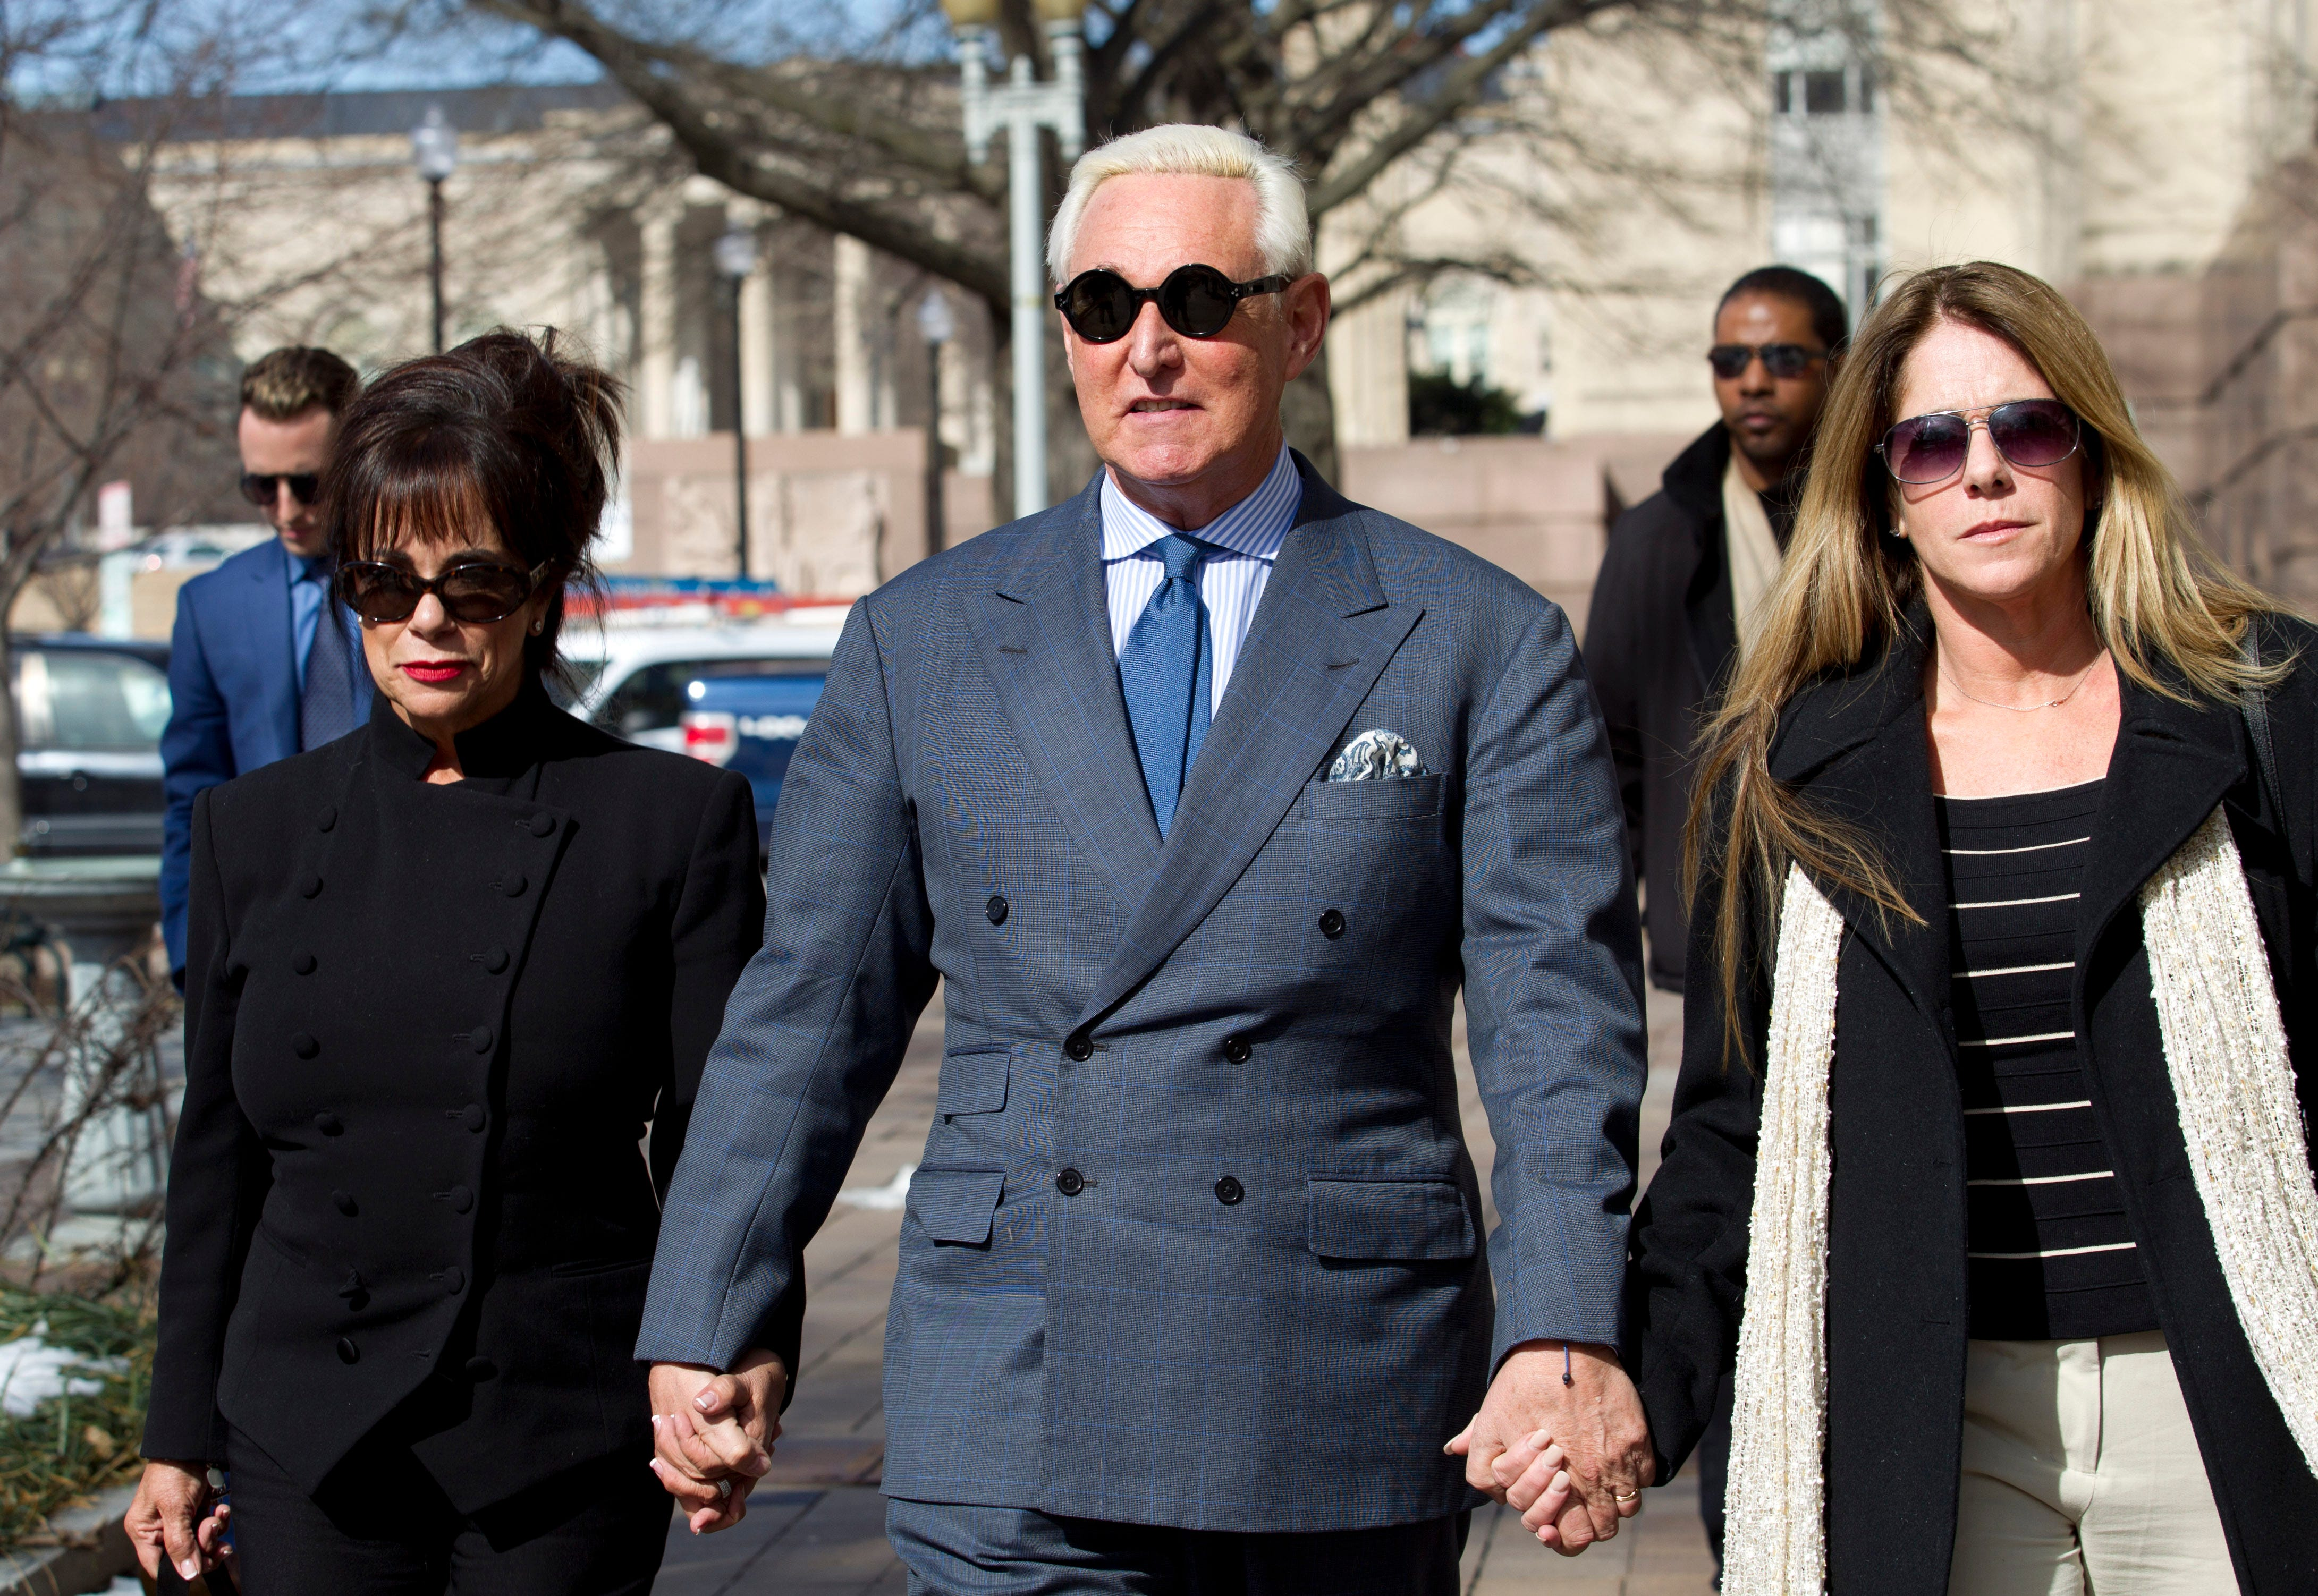 Judge rejects request from Trump ally Roger Stone to delay sentencing hearing